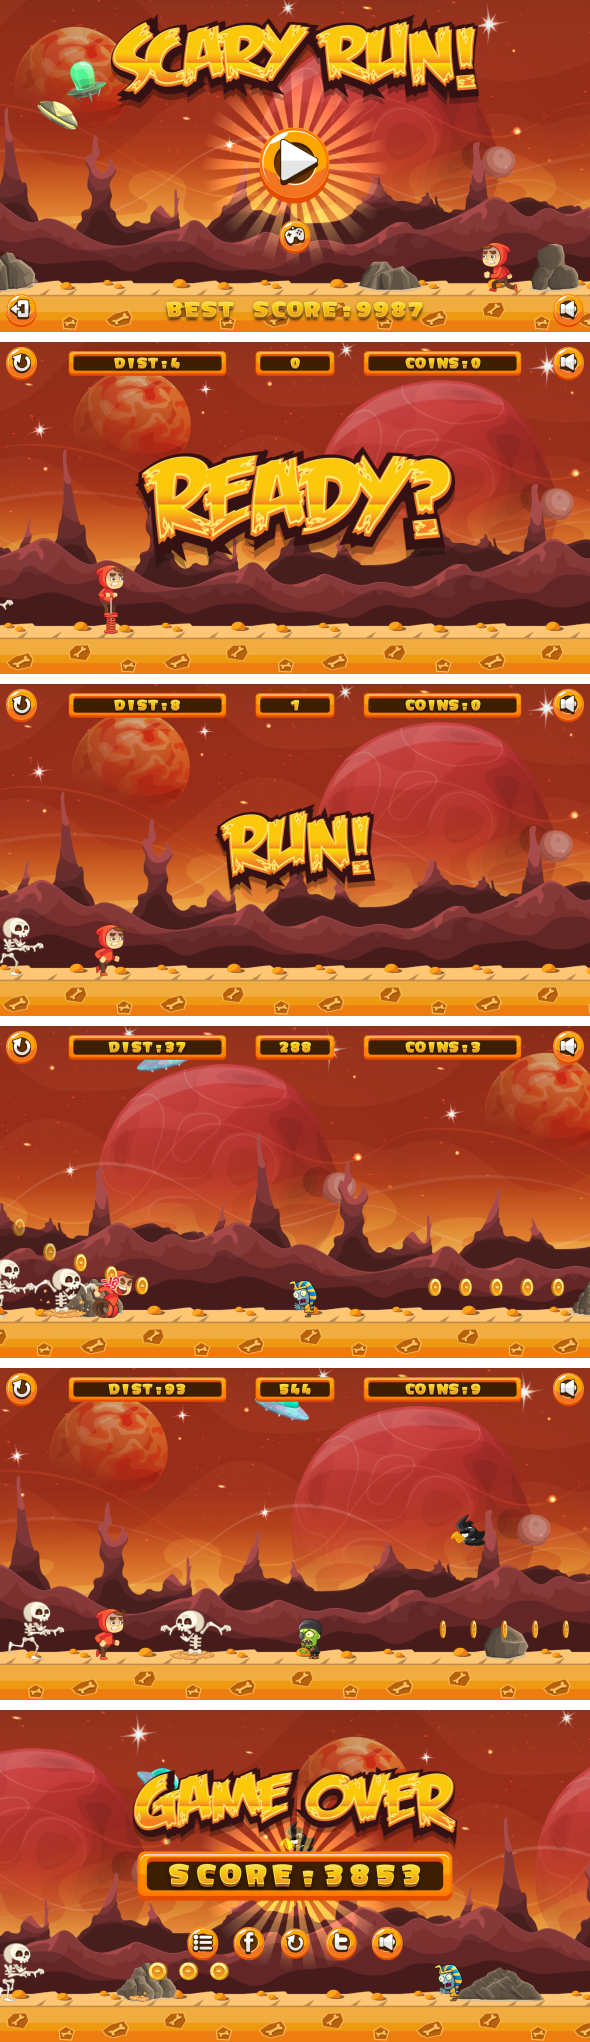 Scary Run - Jeu HTML5 + Android + AdMob (Construct 3 | Construct 2 | Capx) - 3